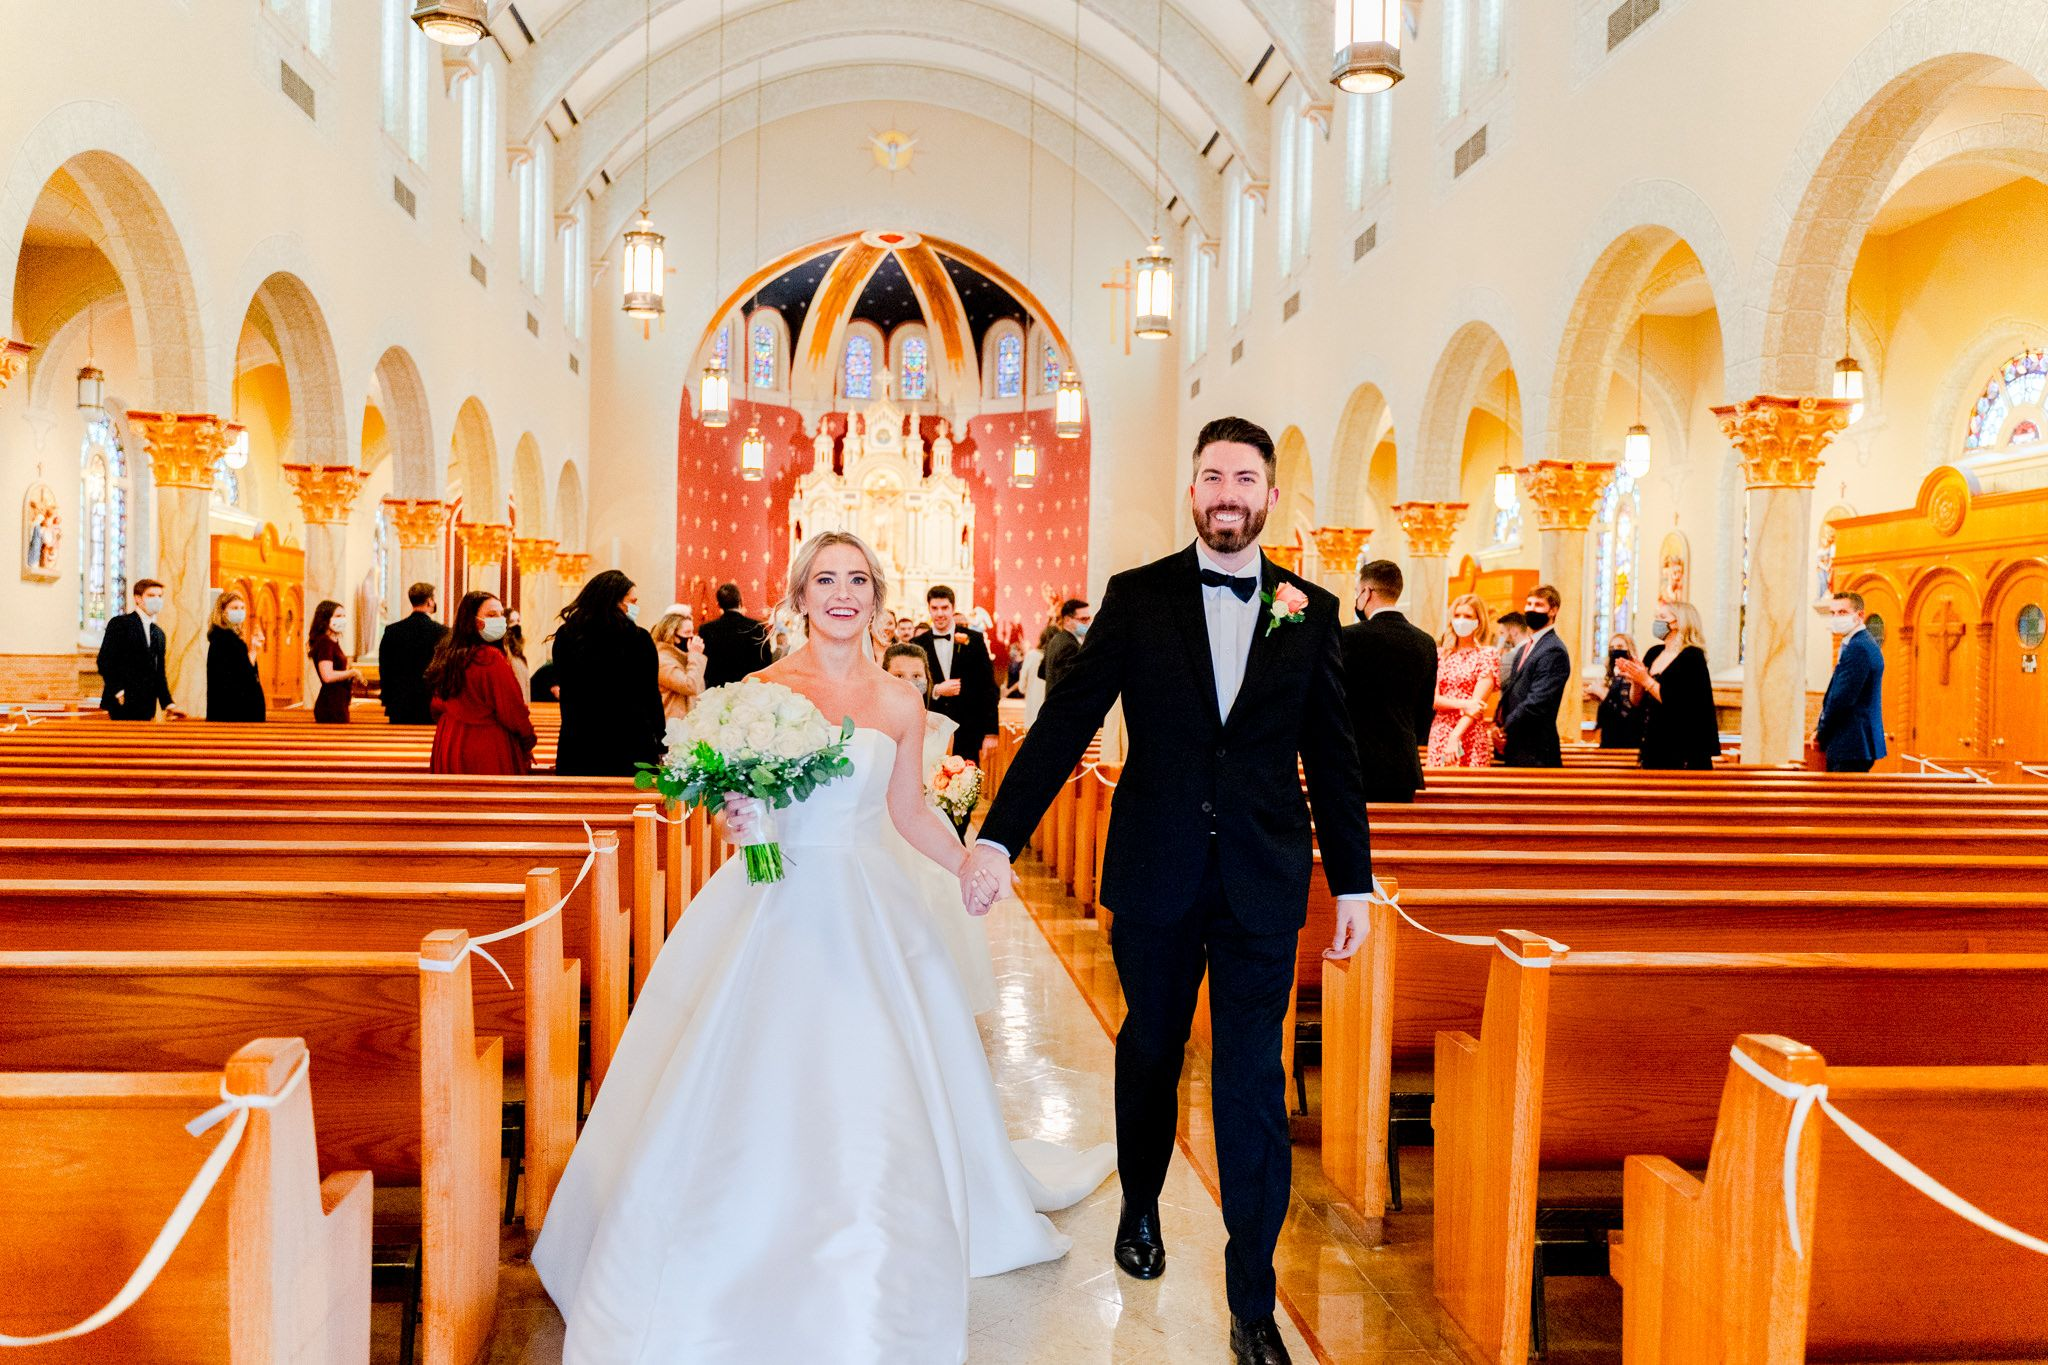 bride and groom walking down church aisle after being married, wedding guests in back smiling at them with masks on